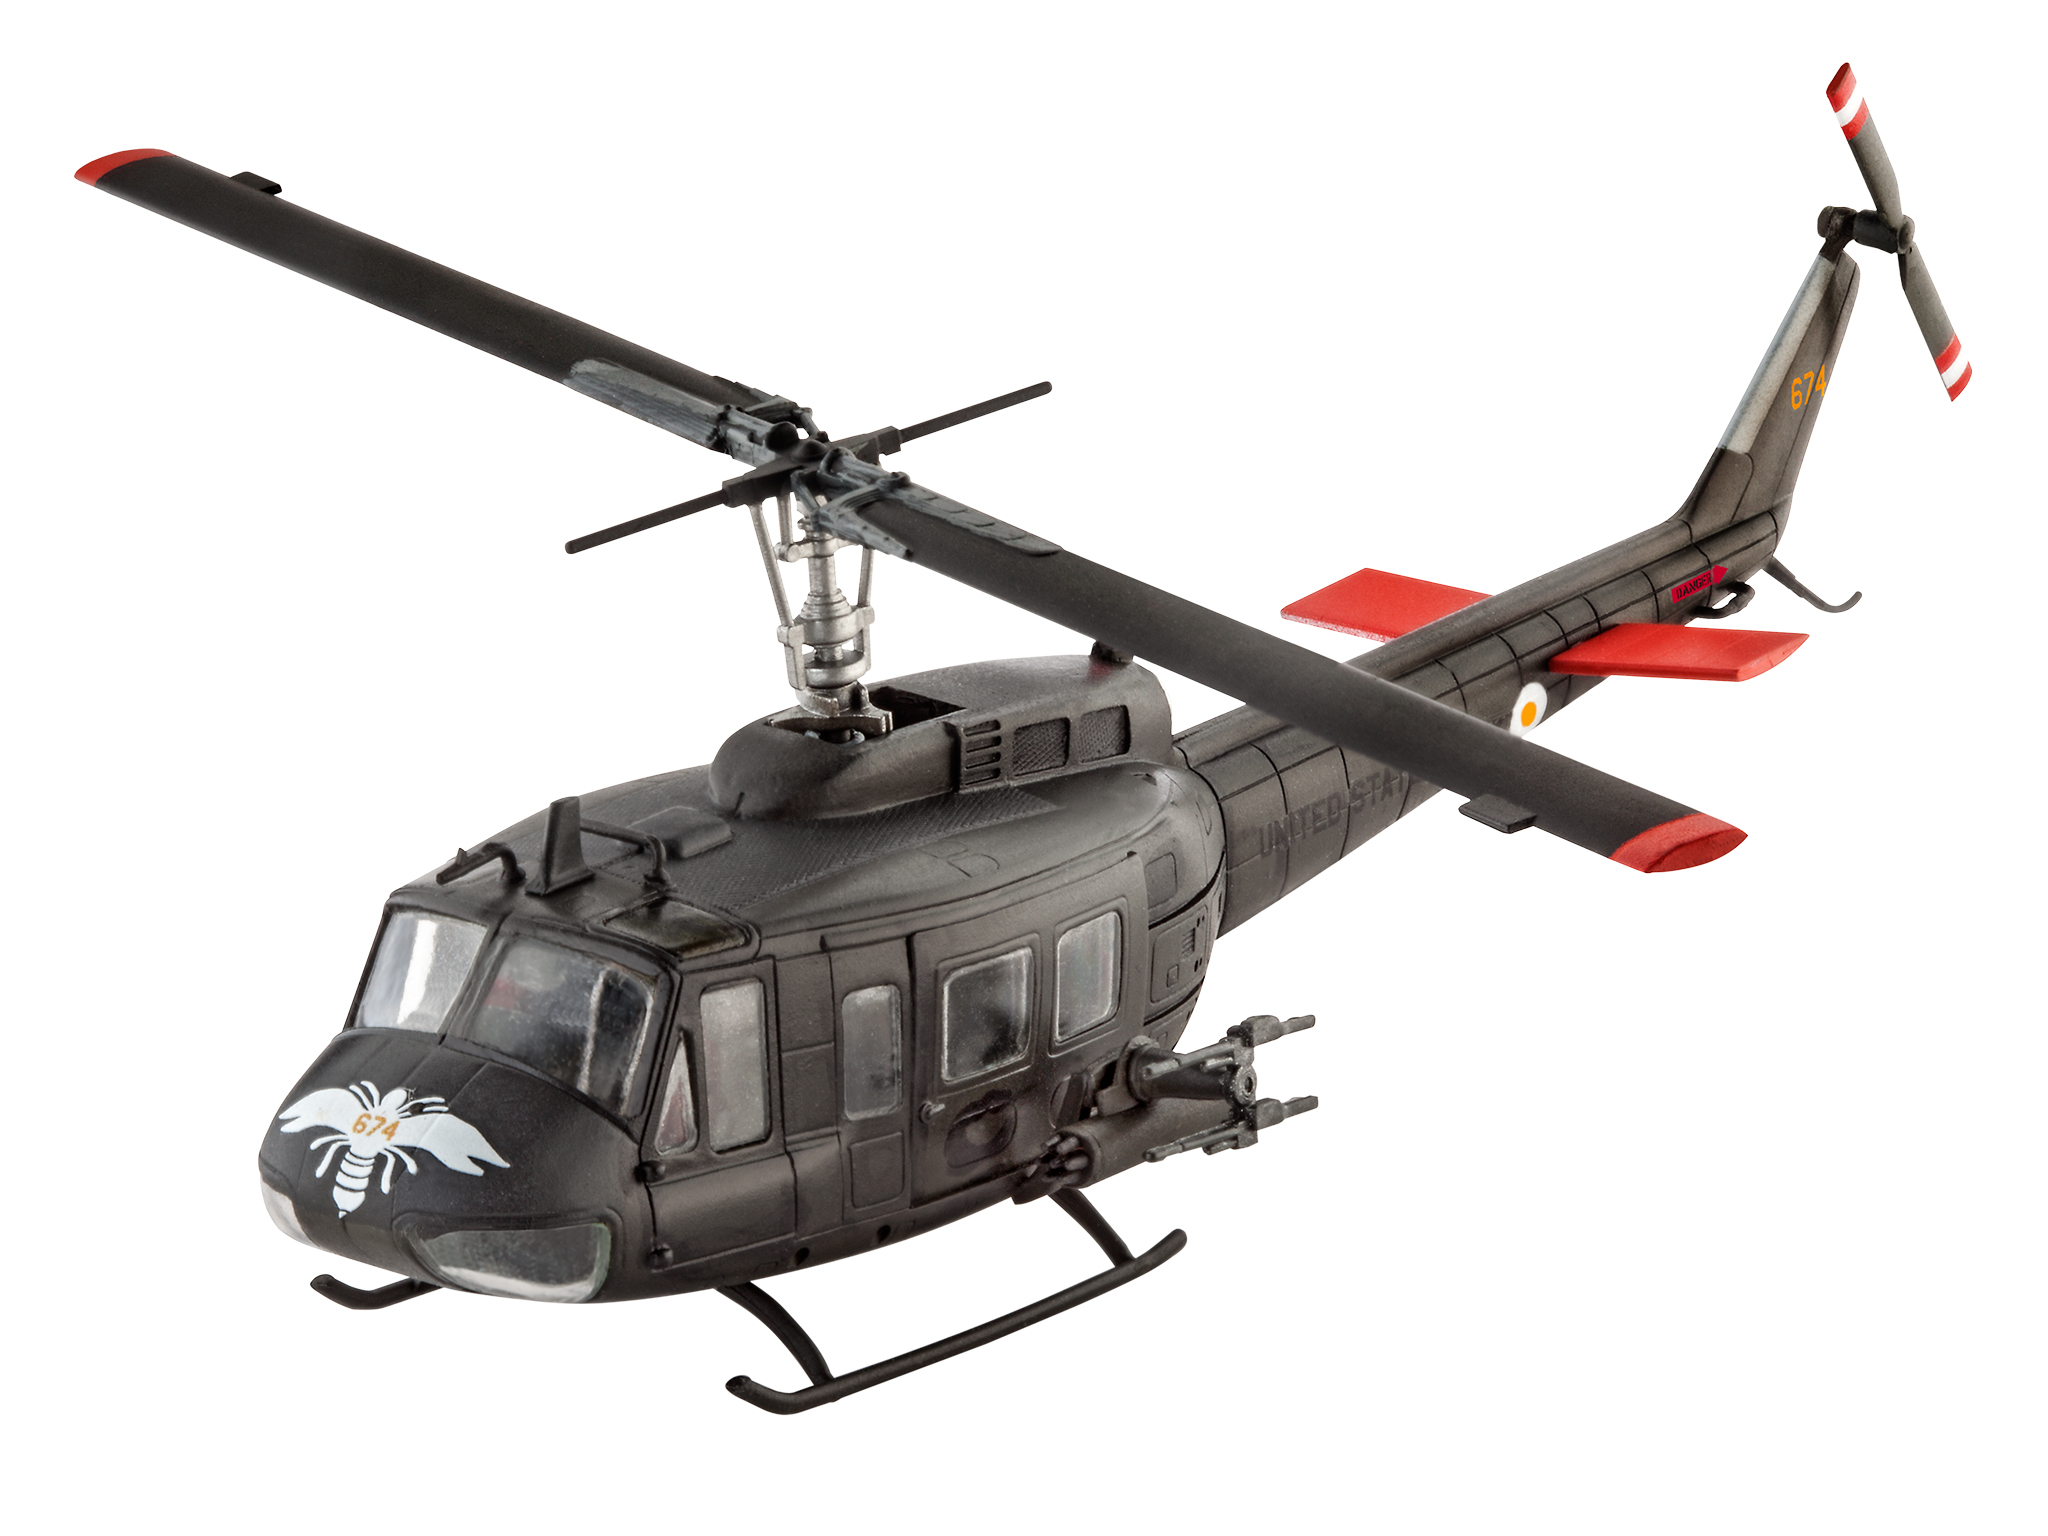 1 4 scale rc helicopter with Bell Uh 1h Gunship on Traxxas Slash 4x4 Brushless 1 10 Scale Electric 4wd Short Course Truck W 24ghz Radio moreover Watch also 8085 as well Airbus A380 800 1570889 moreover Model Set Opel GT.